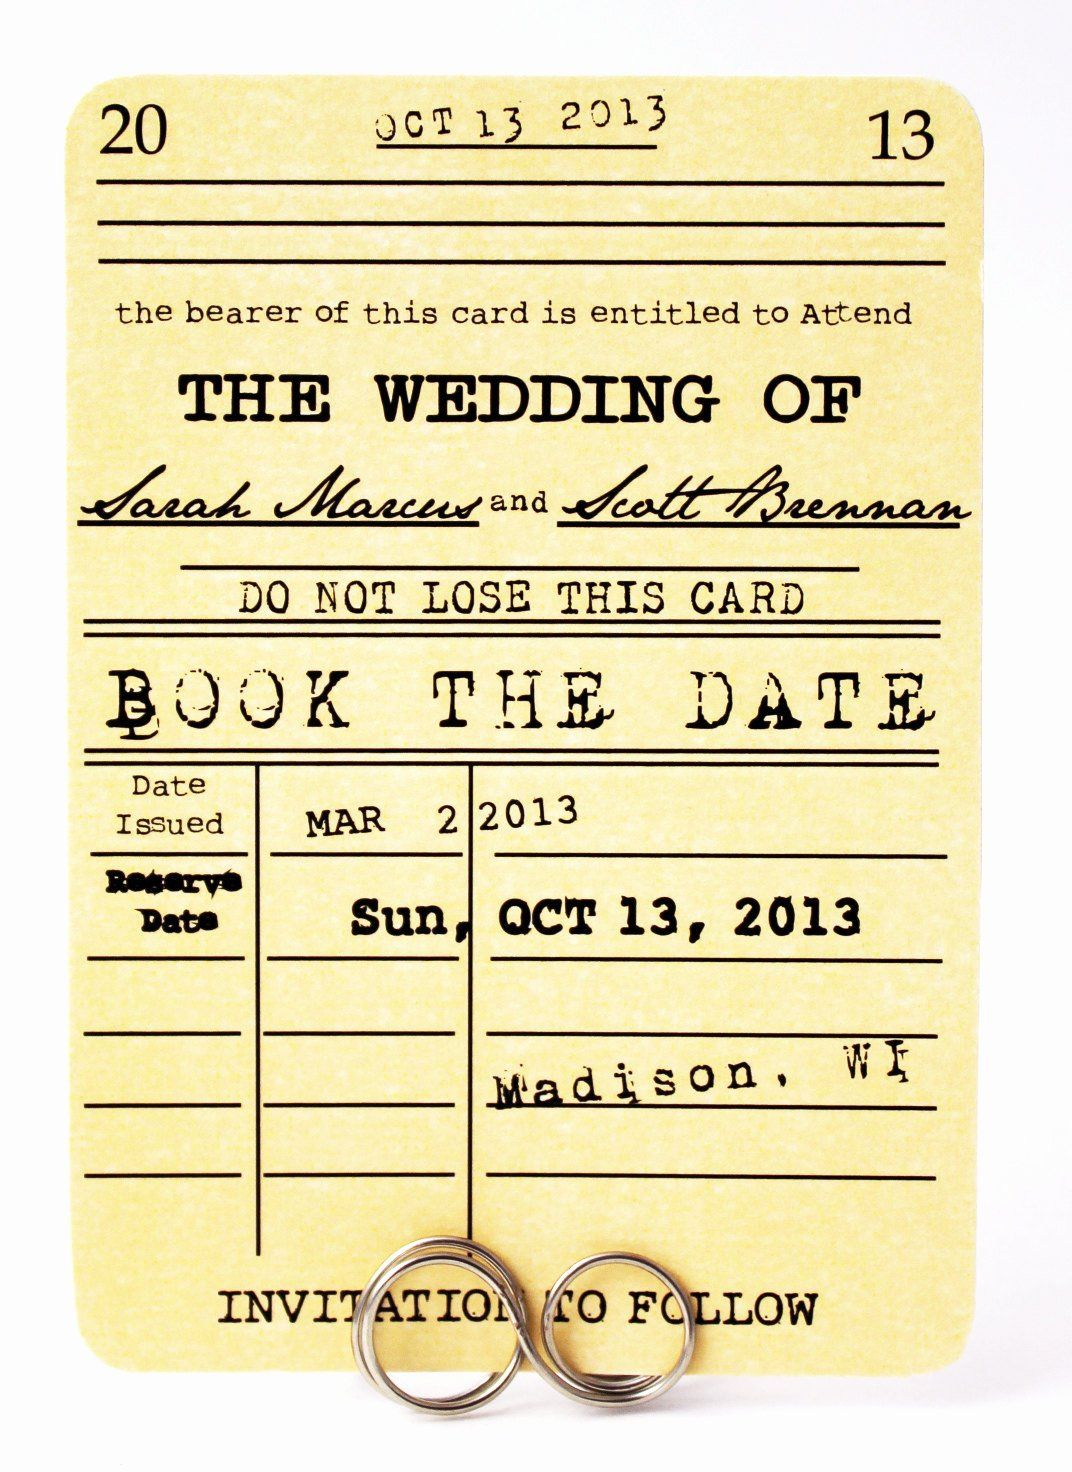 Library Card Invitations Template Best Of Save The Date Card Book The Date Library Card Wed Invitation Template Wedding Cards Handmade Wedding Invitation Cards